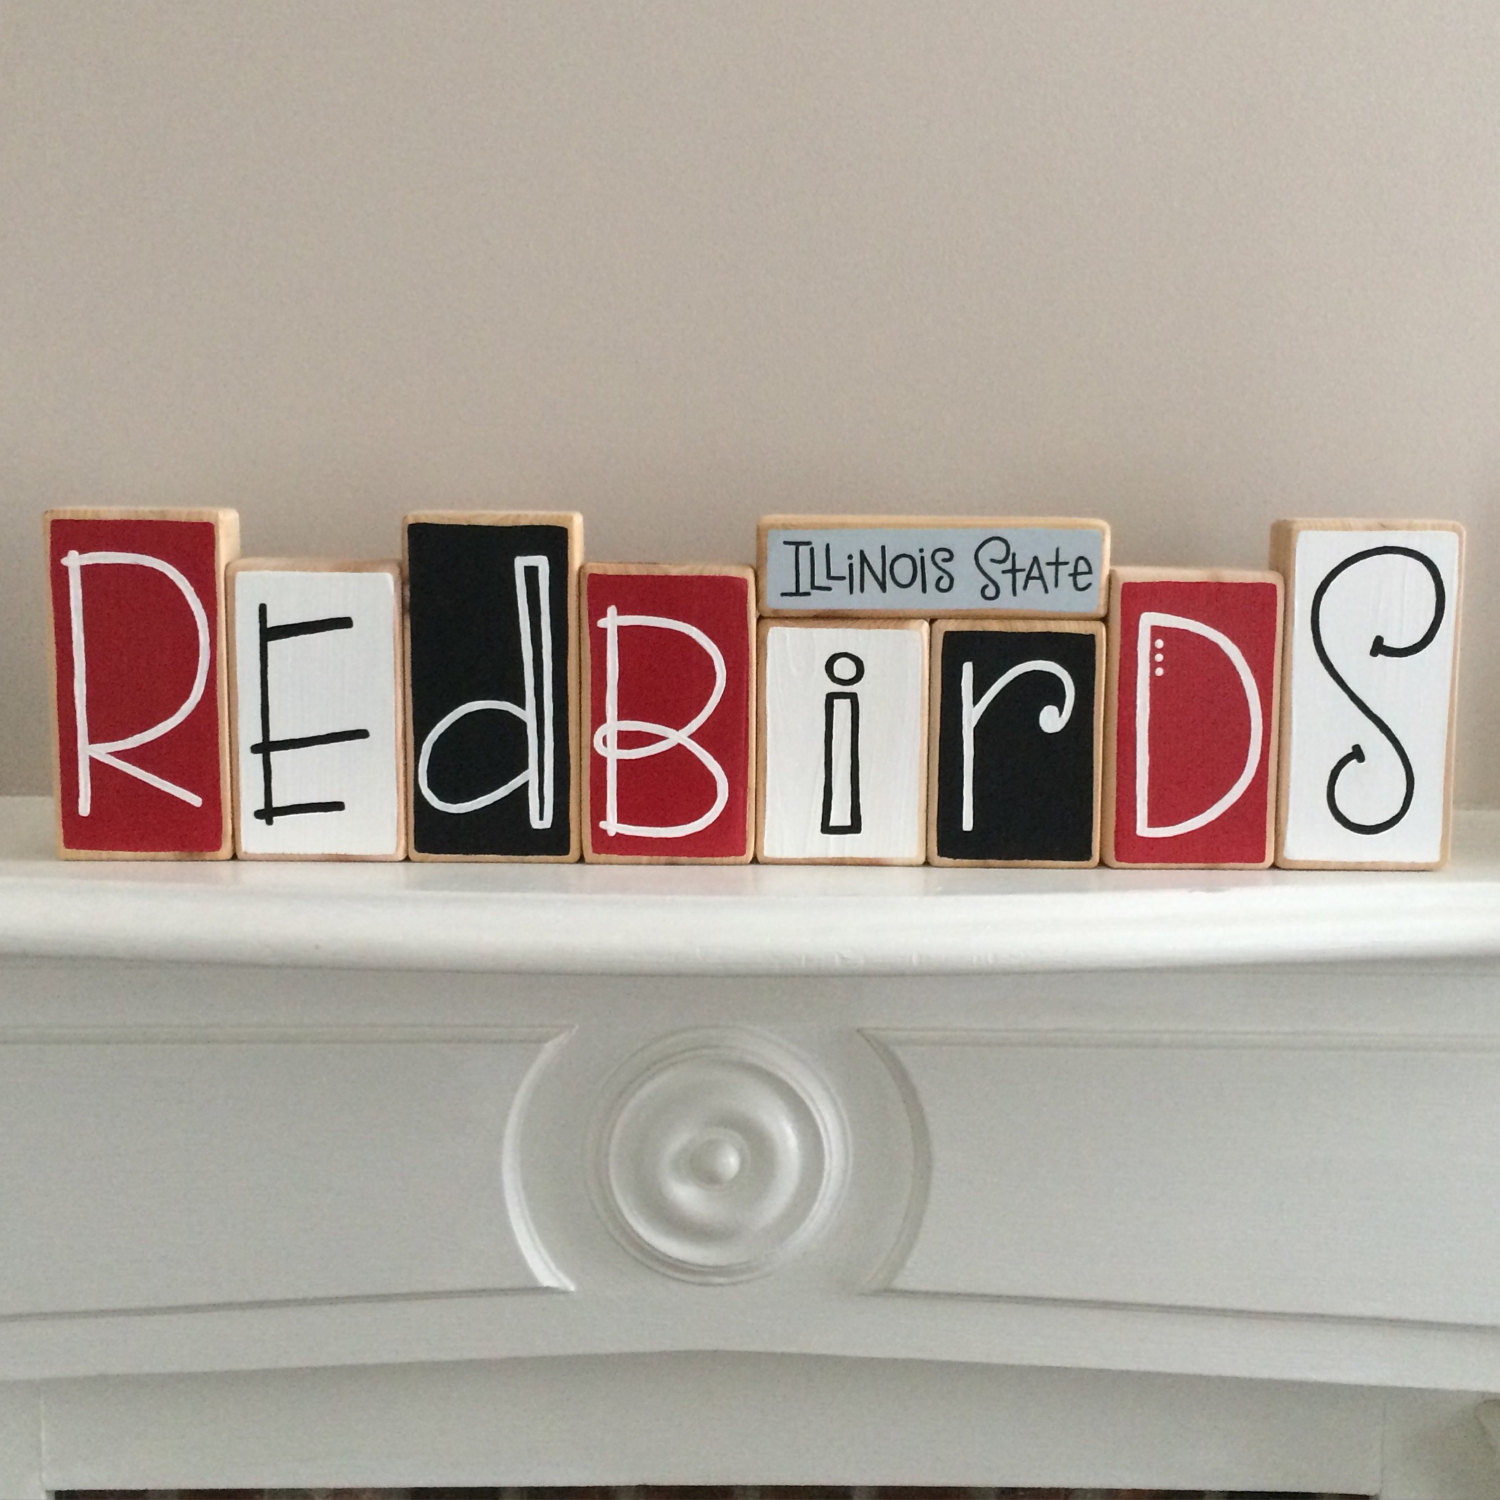 Illinois-State-University-Redbirds-Decorative-Blocks-by-RuchalskiRustic-